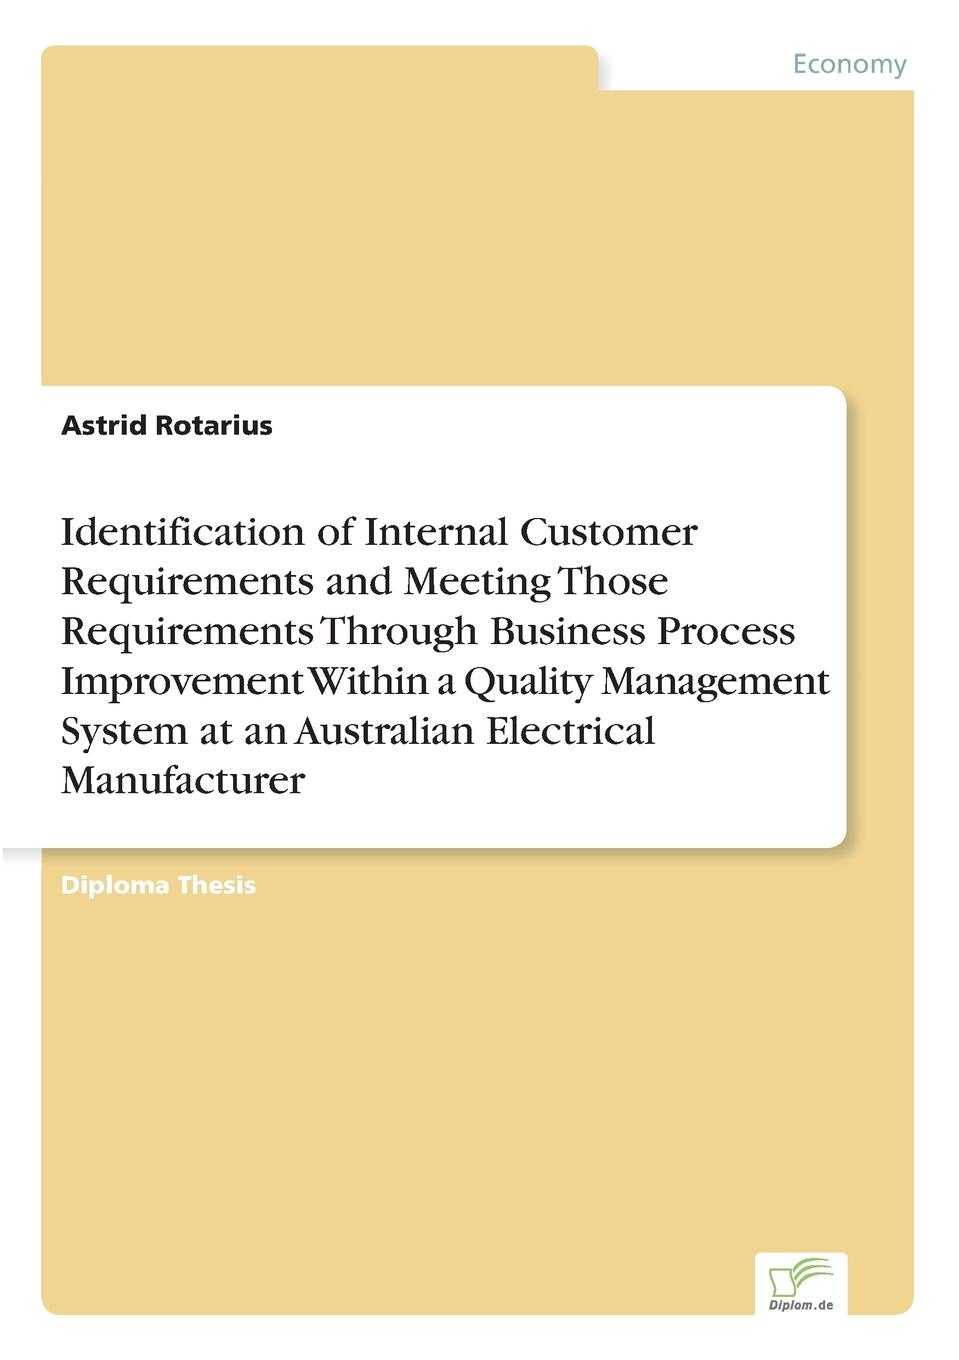 Astrid Rotarius Identification of Internal Customer Requirements and Meeting Those Requirements Through Business Process Improvement Within a Quality Management System at an Australian Electrical Manufacturer andrew frawley igniting customer connections fire up your company s growth by multiplying customer experience and engagement